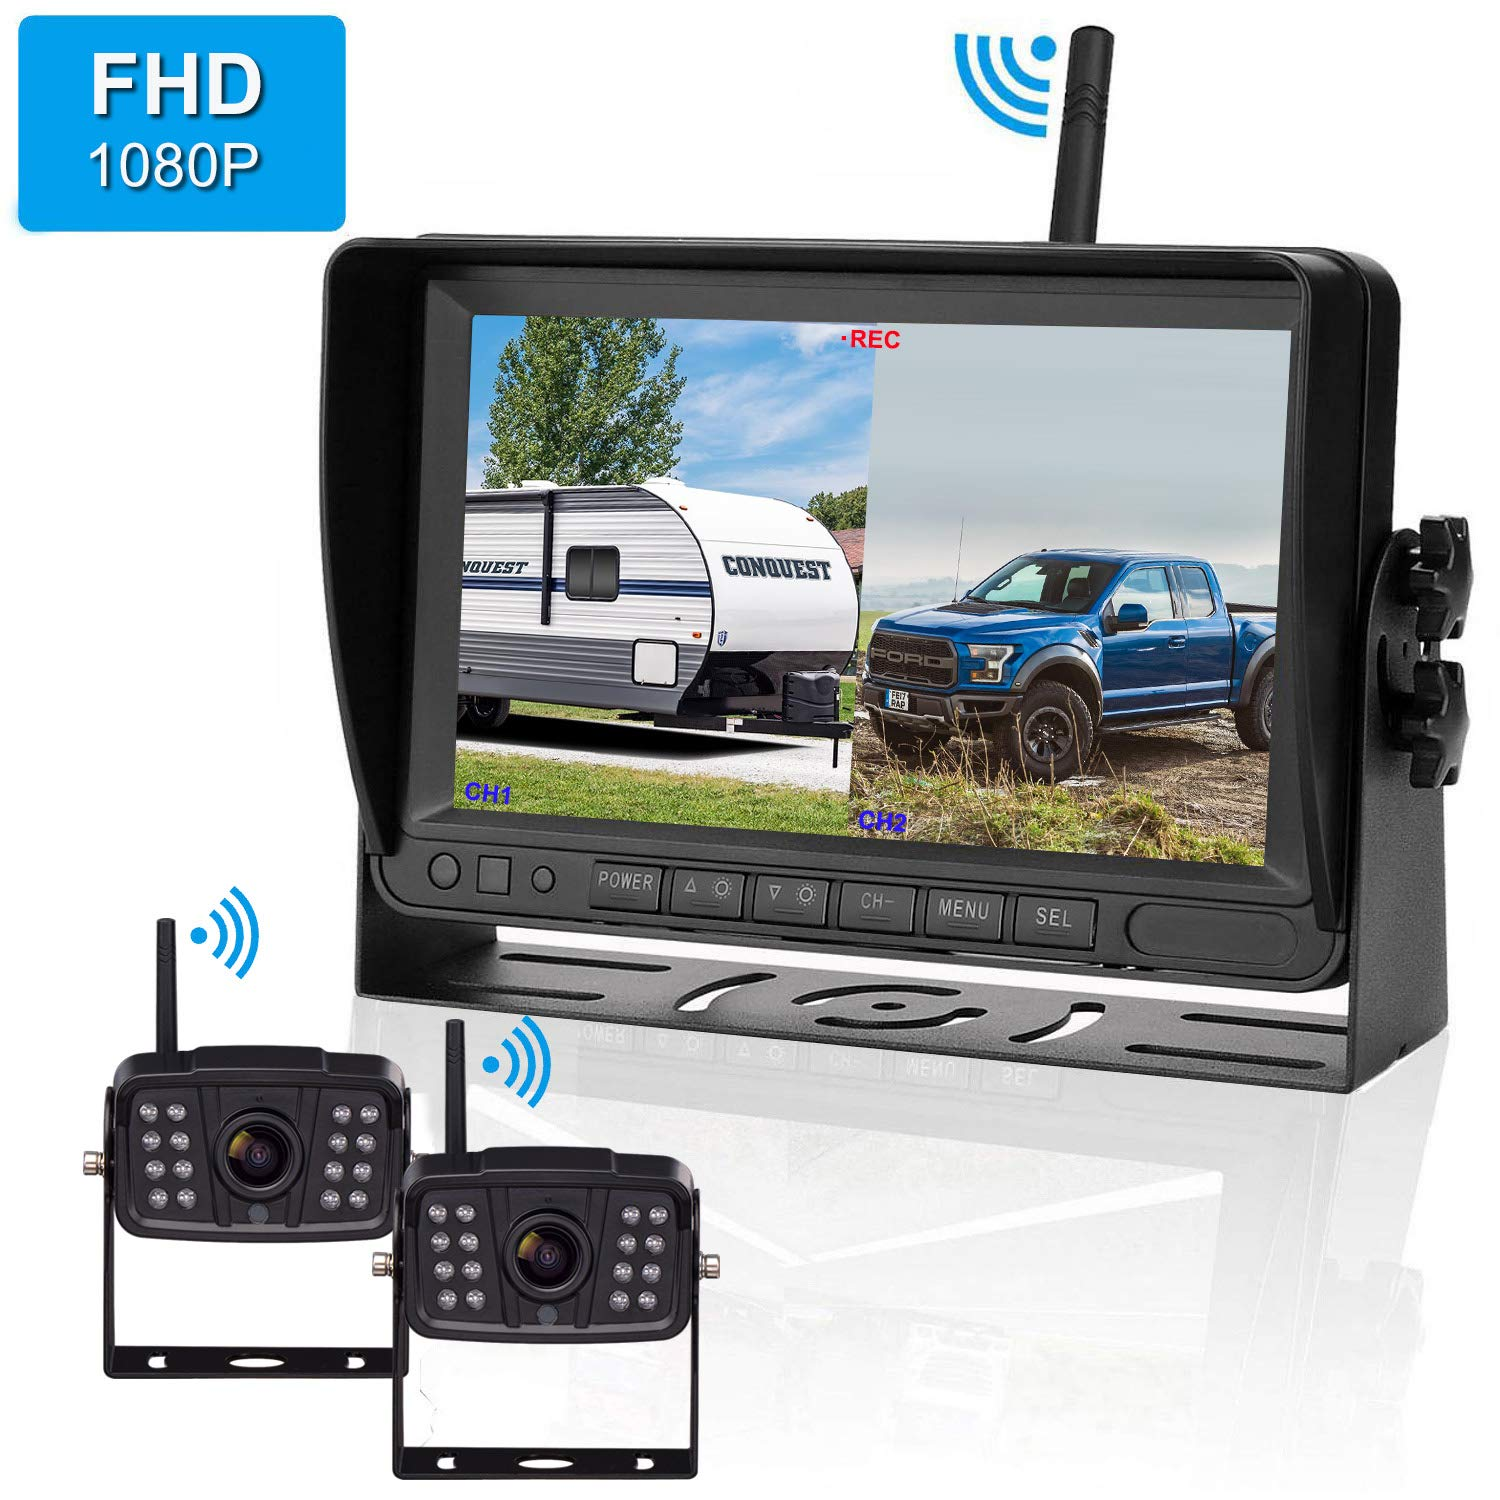 FHD 1080P Digital Wireless 2 Backup Camera for RVs/Trailers/Trucks/Motorhomes/5th Wheels 7''Monitor with DVR Highway Monitoring System IP69K Waterproof Super Night Vision by iStrong